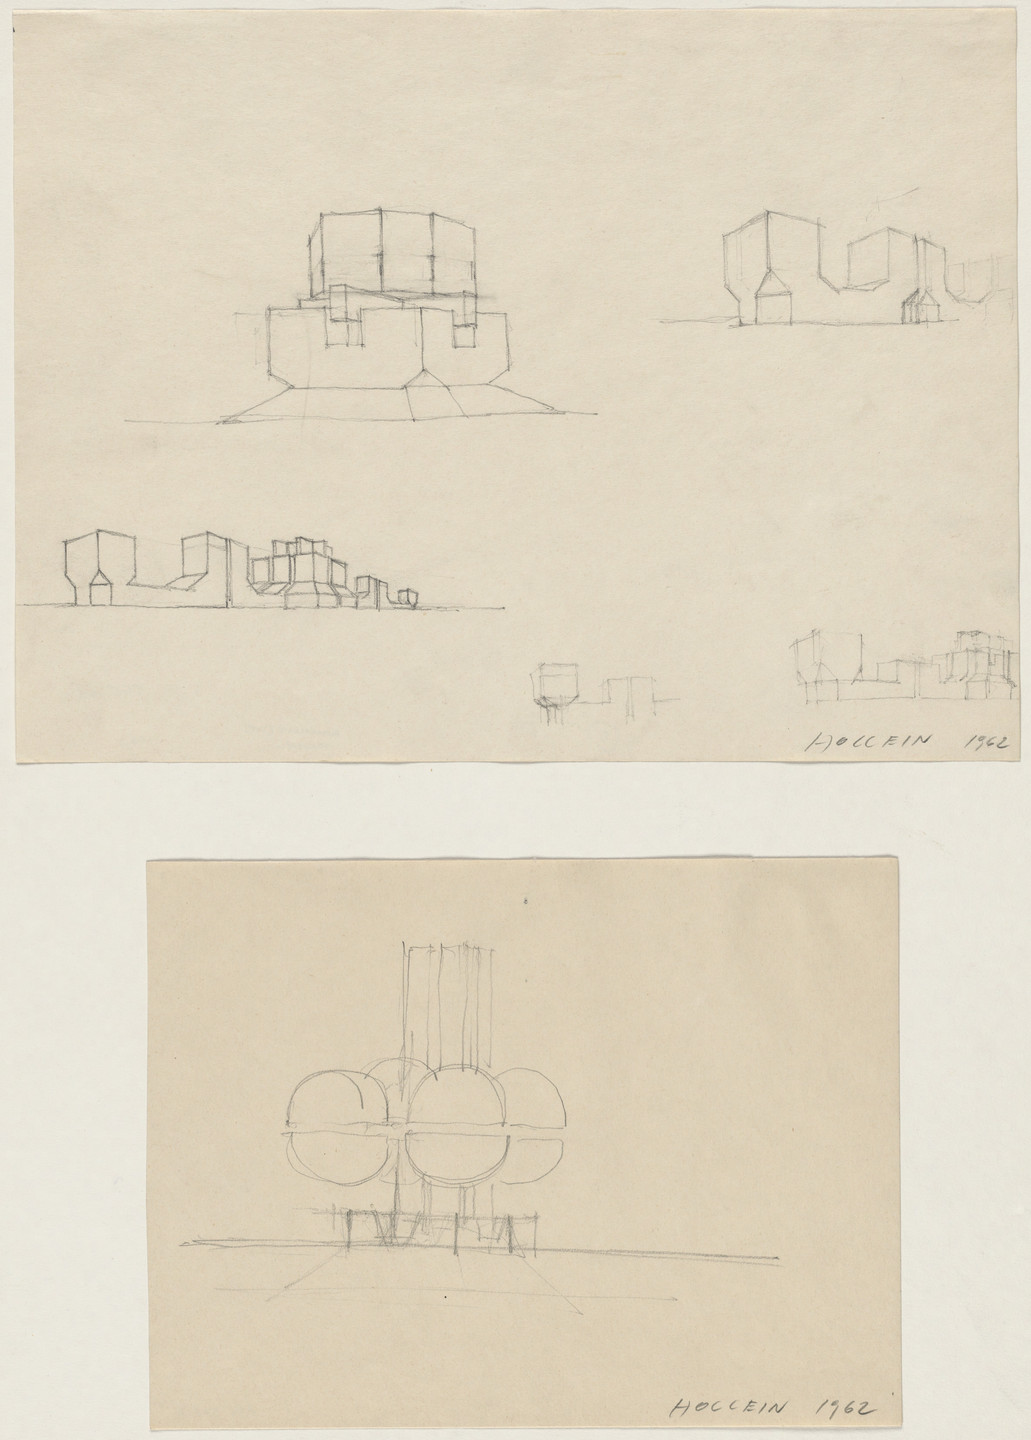 Hans Hollein. Building Form Studies, project, Perspectives. 1962